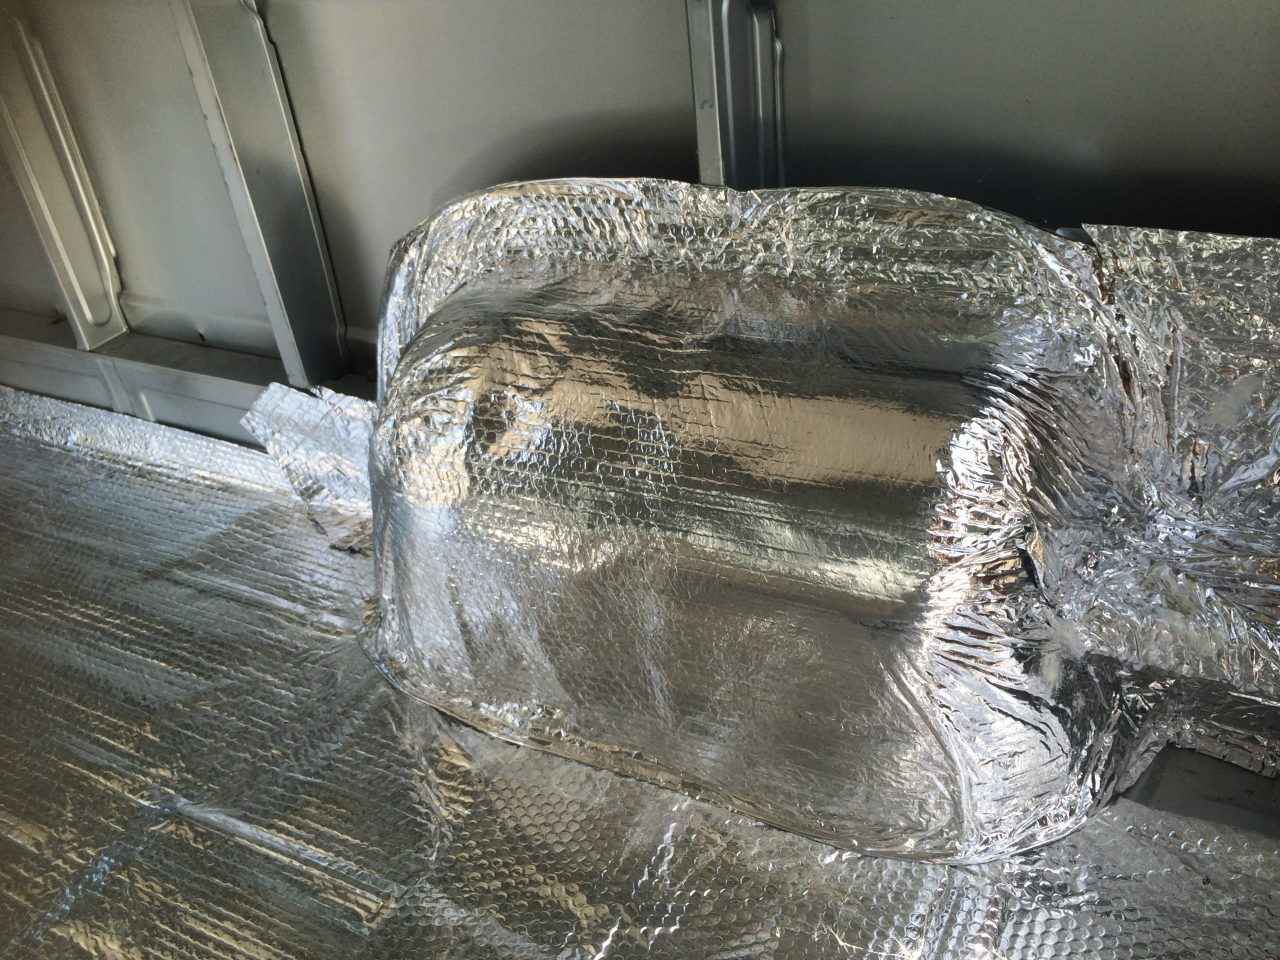 making-the-van-floor-donkey-van-conversion-06-foil-insulation-difficult-shapes